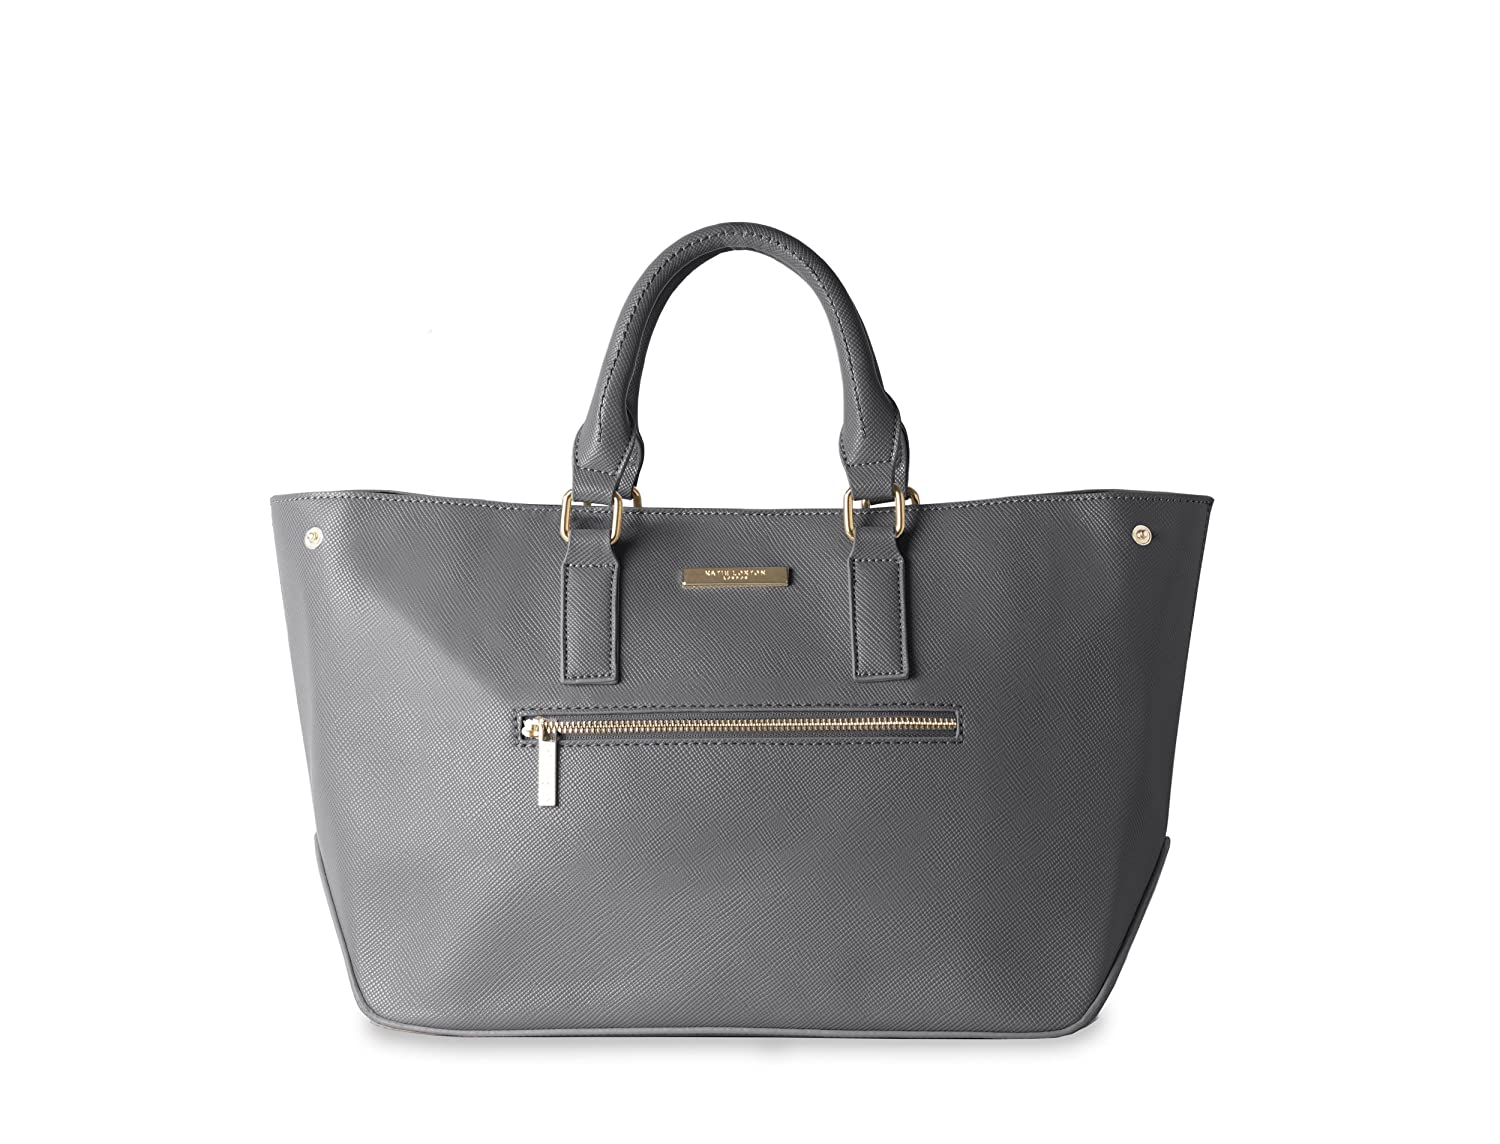 Adalie Day Bag Katie Loxton Charcoal